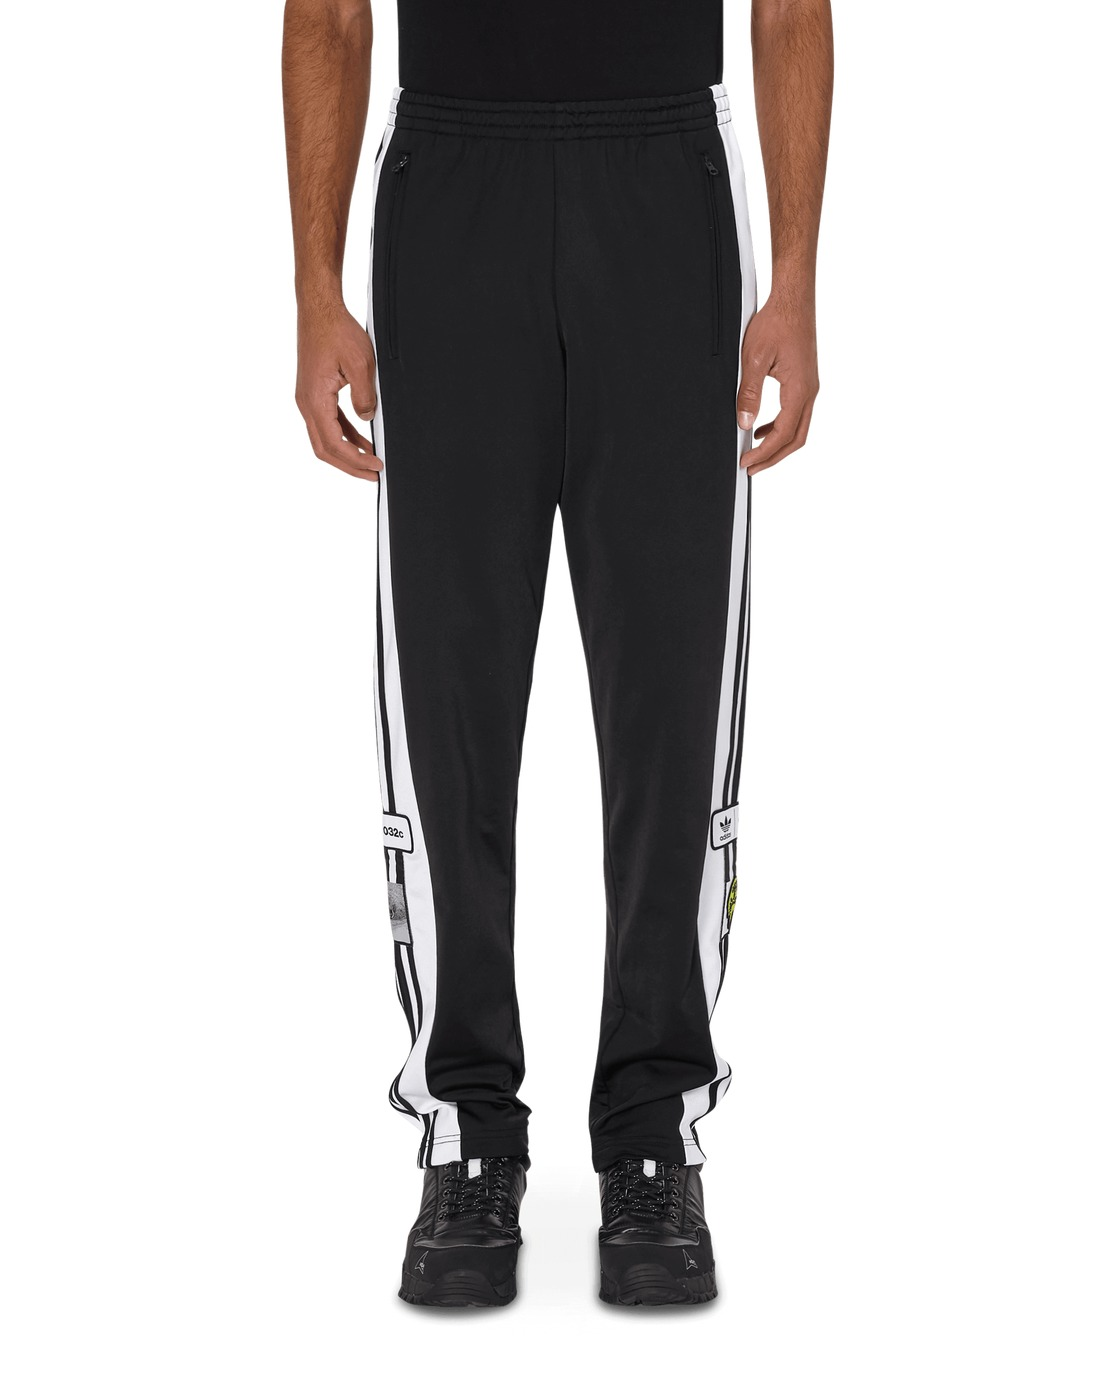 Adidas Originals 032c Adibreak Track Pants Black